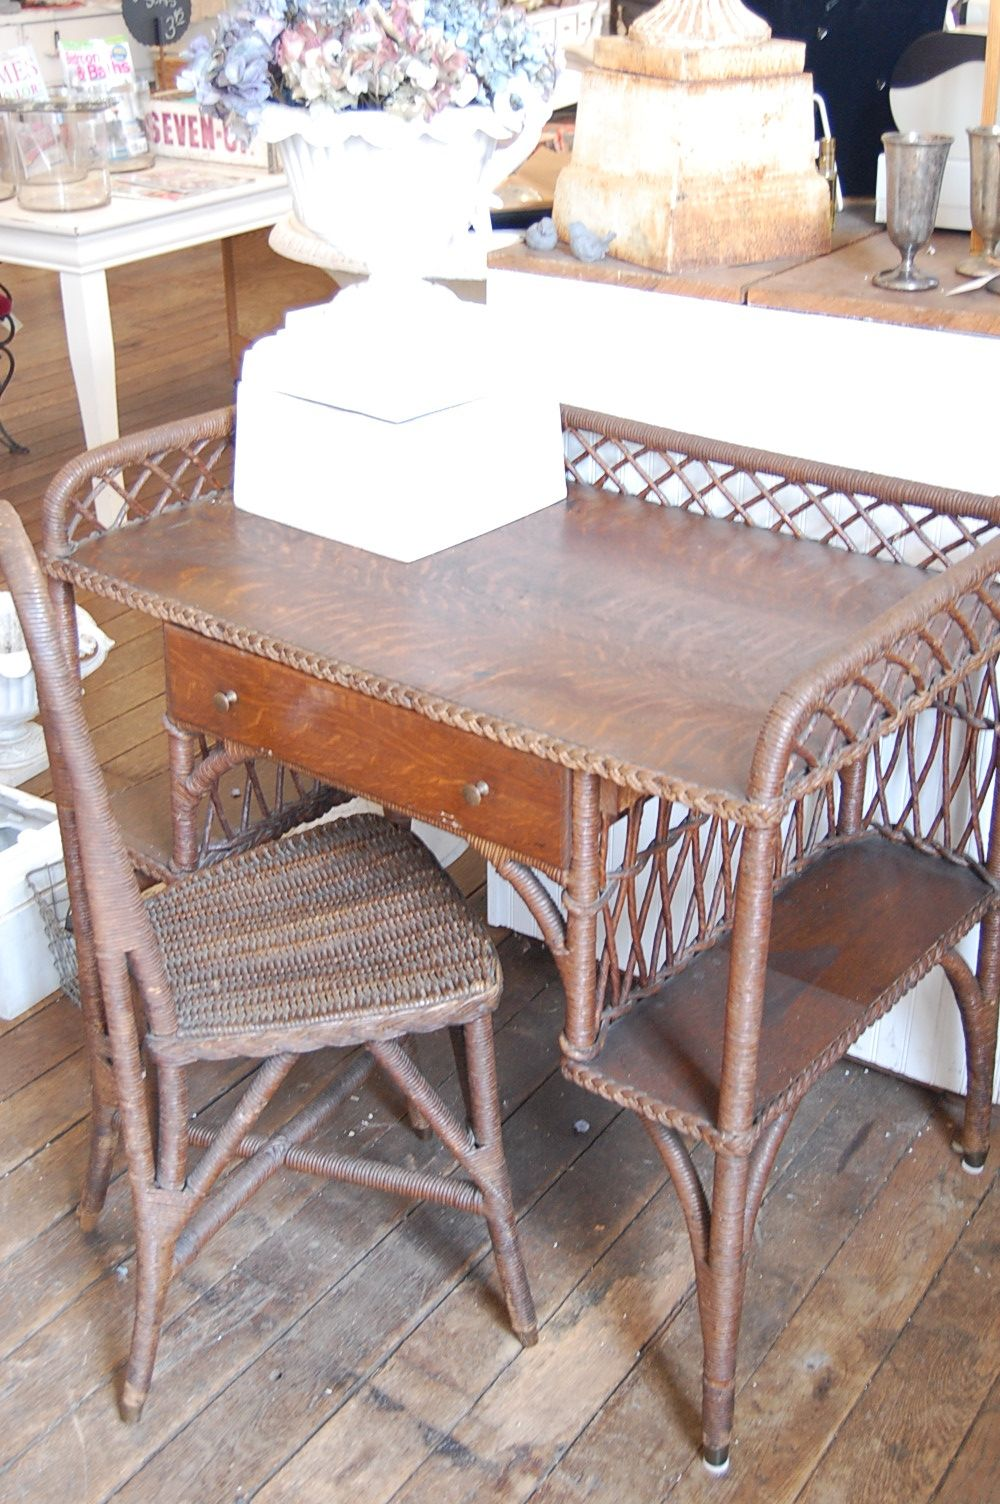 Antique Wicker Desk And Chair - Antique Wicker Desk And Chair Raisin In The Sun Pinterest Desks